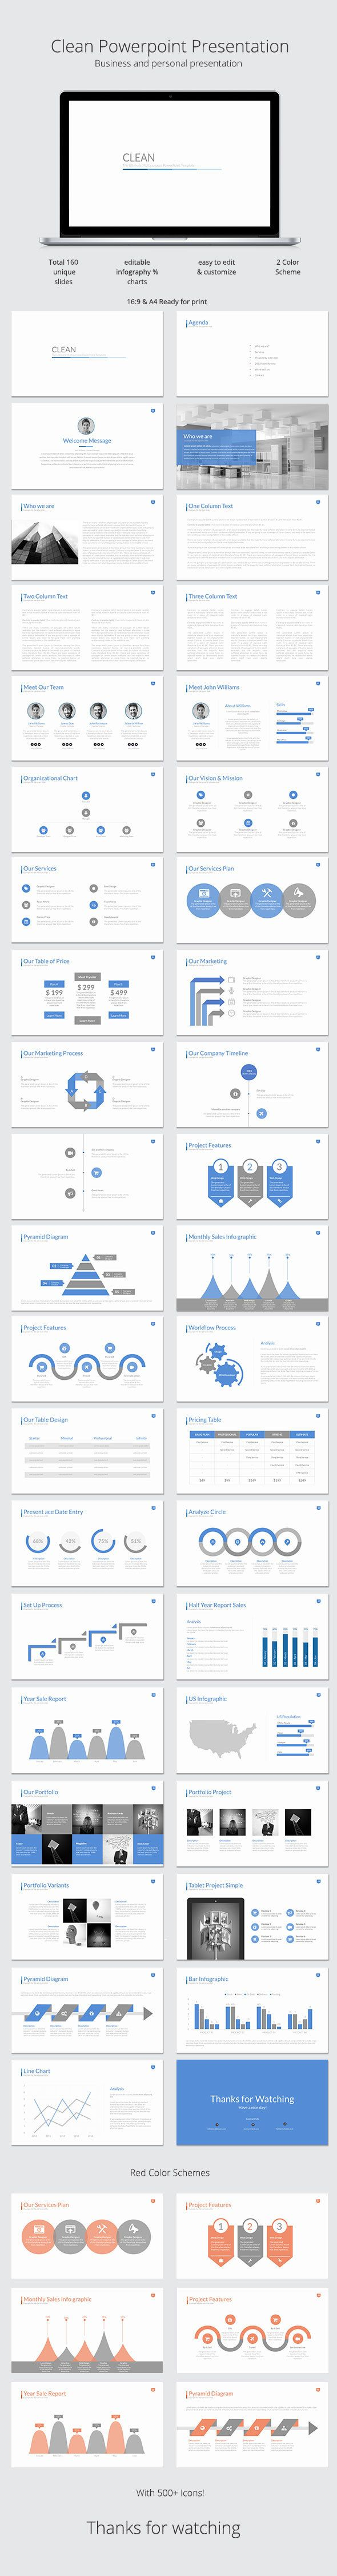 Coolmathgamesus  Scenic  Ideas About Powerpoint Presentations On Pinterest With Foxy Clean Powerpoint Template With Easy On The Eye Powerpoint Presenter Remote Also Process Flow Powerpoint In Addition Recovering Powerpoint Files And Rheumatoid Arthritis Powerpoint As Well As Artistic Powerpoint Templates Additionally Chinese Powerpoint Template From Pinterestcom With Coolmathgamesus  Foxy  Ideas About Powerpoint Presentations On Pinterest With Easy On The Eye Clean Powerpoint Template And Scenic Powerpoint Presenter Remote Also Process Flow Powerpoint In Addition Recovering Powerpoint Files From Pinterestcom